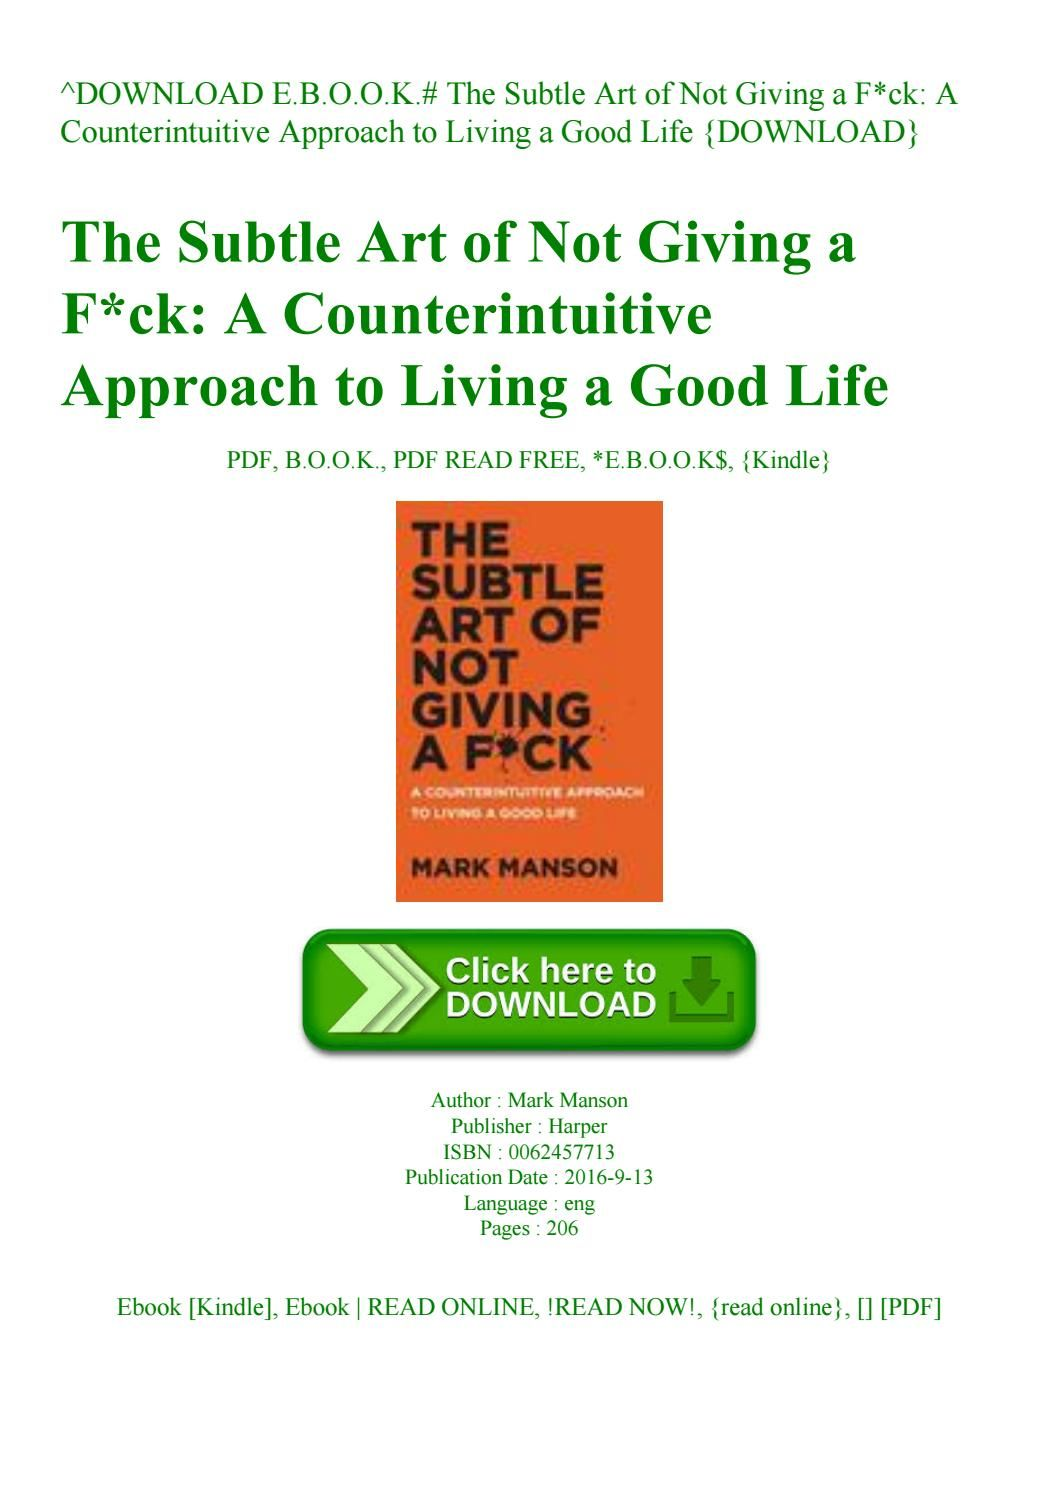 The Subtle Art Of Not Giving A Fck A Counterintuitive Approach To Living A Good Life Download Ebook The Subtle Art Of Not Giving A Library In 2019